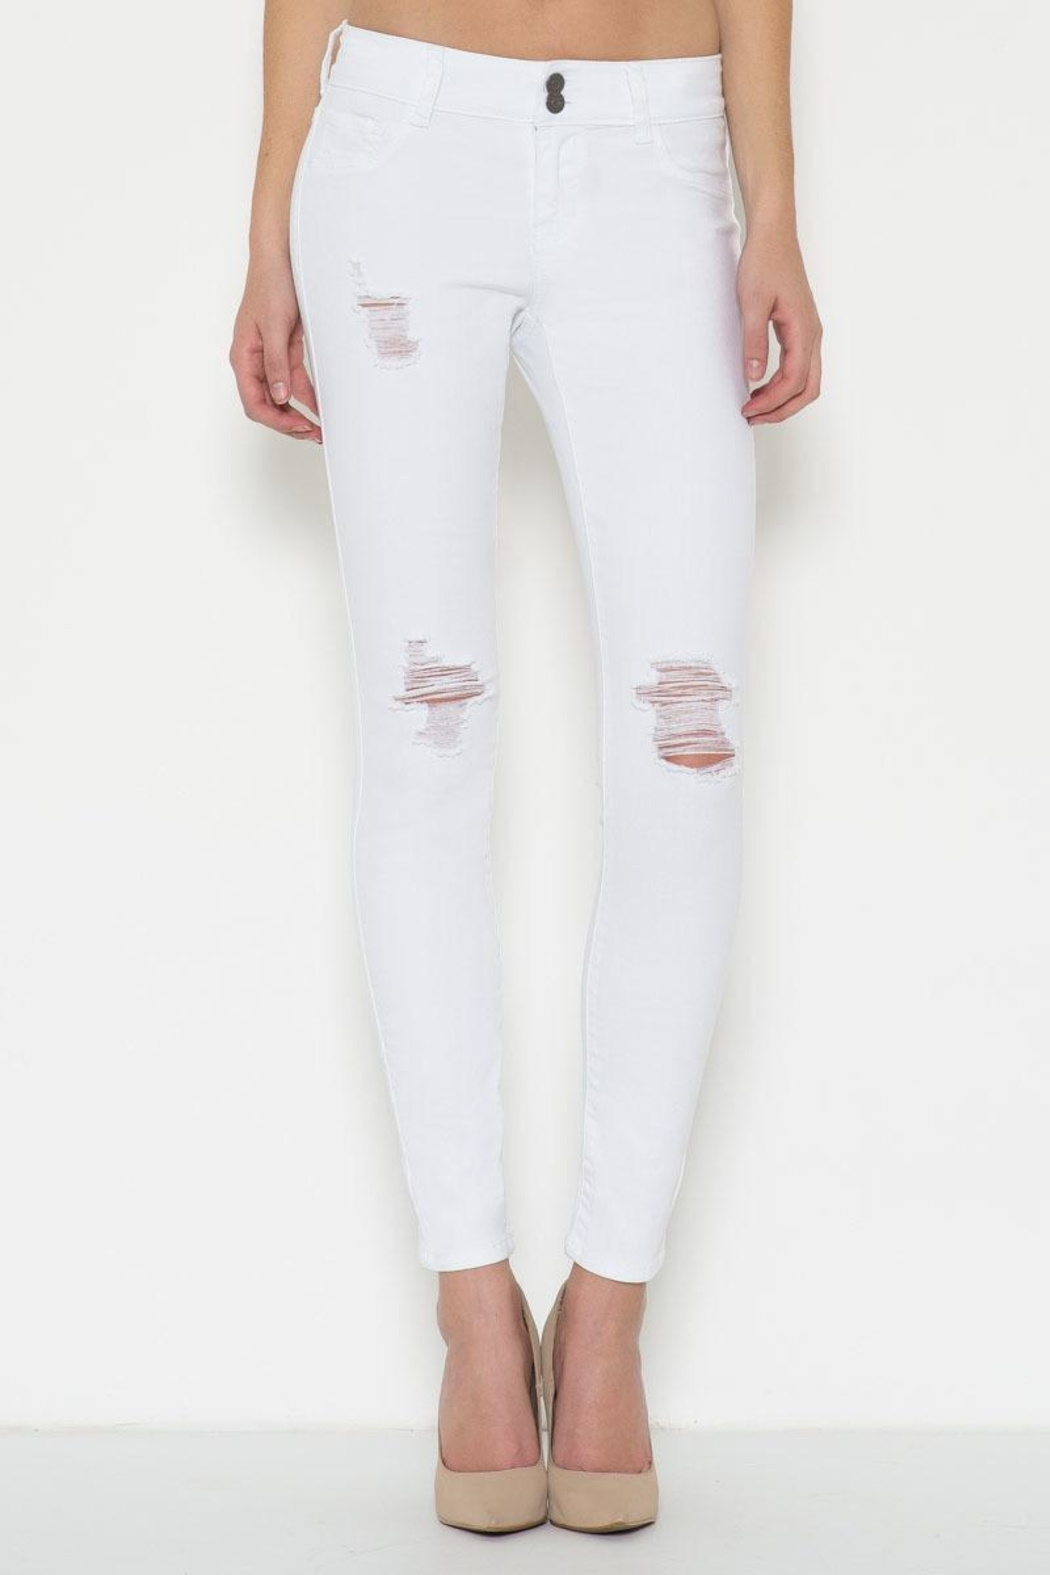 Cello Jeans White Distressed Jeans - Main Image